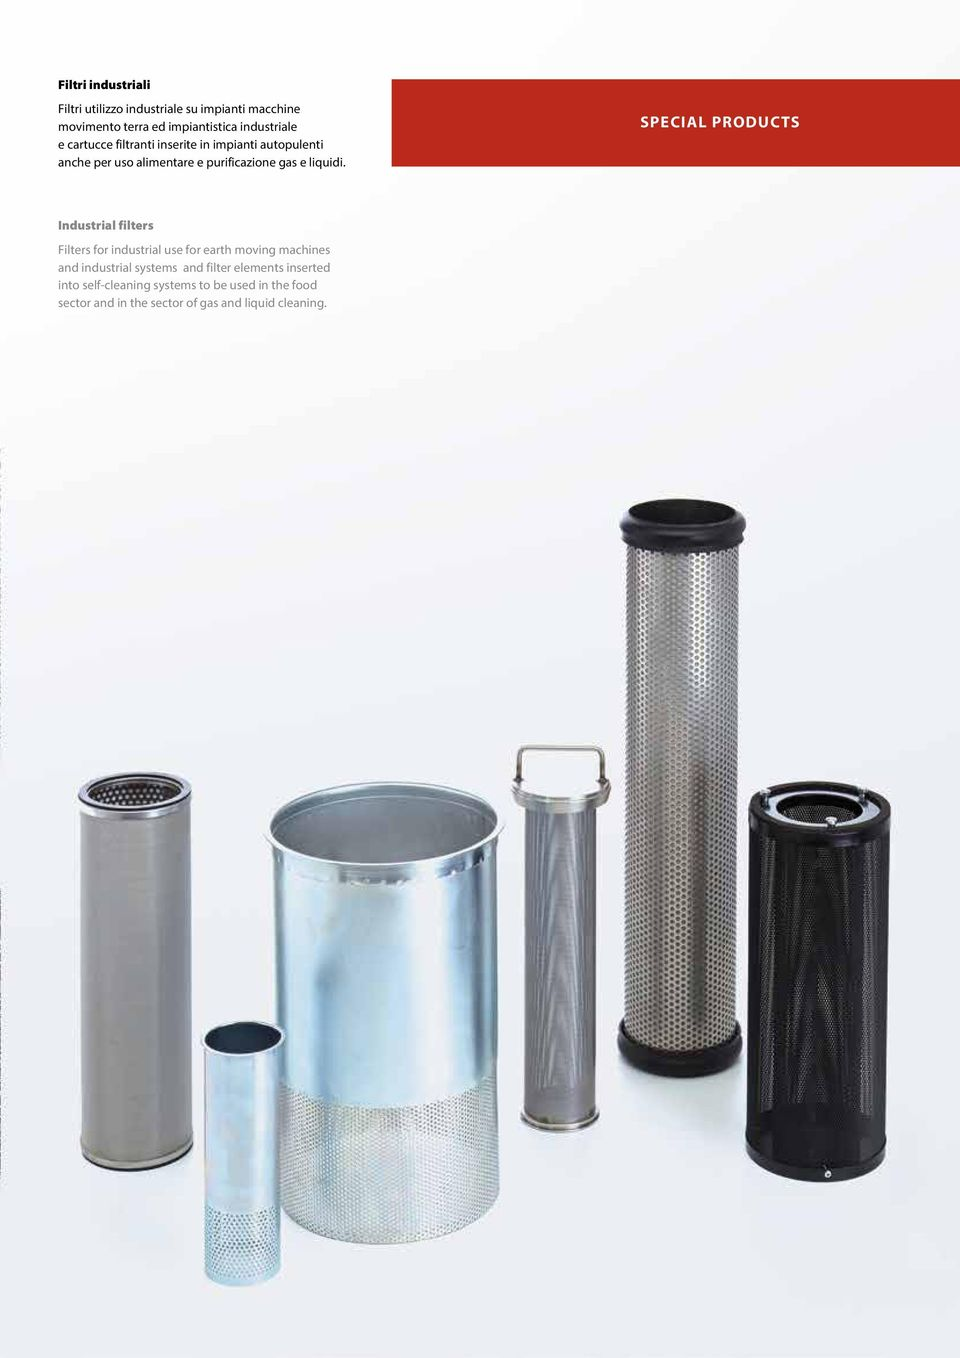 SPECIAL PRODUCTS Industrial filters Filters for industrial use for earth moving machines and industrial systems and